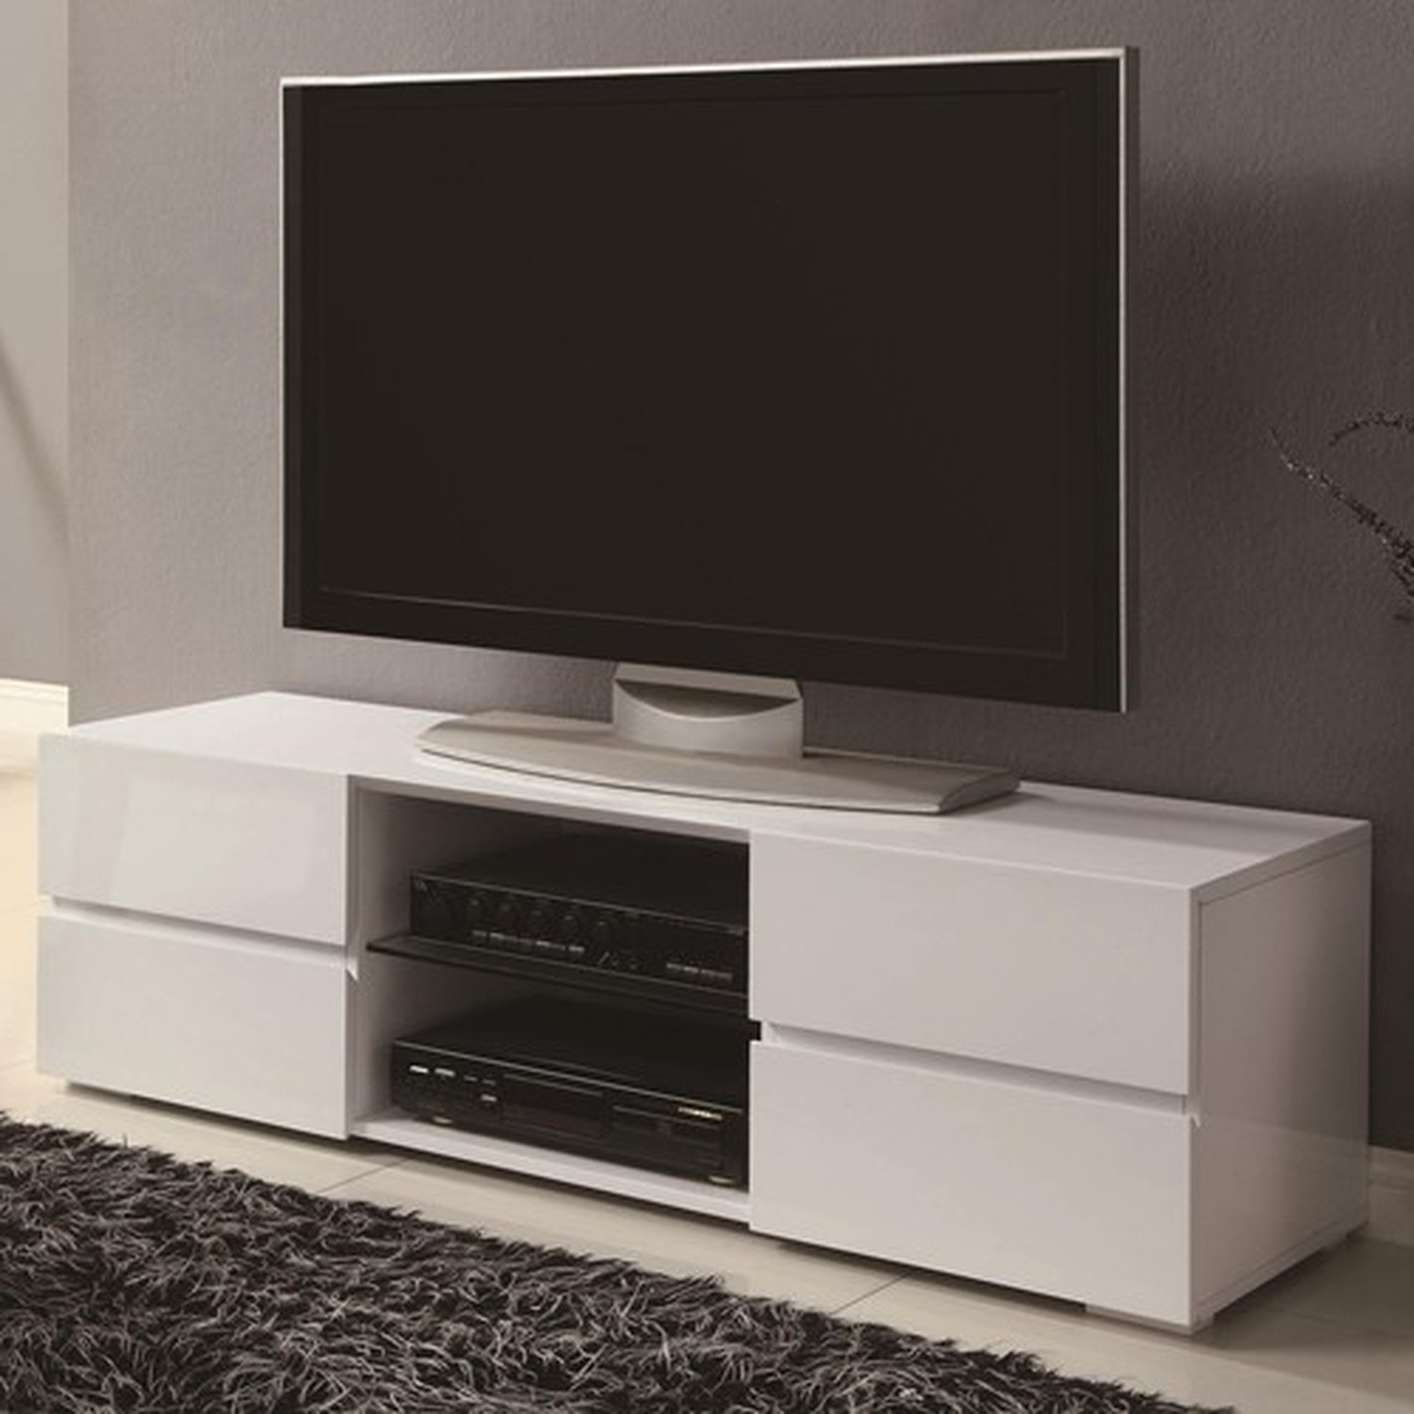 White Wood Tv Stand – Steal A Sofa Furniture Outlet Los Angeles Ca With Glossy White Tv Stands (View 14 of 15)